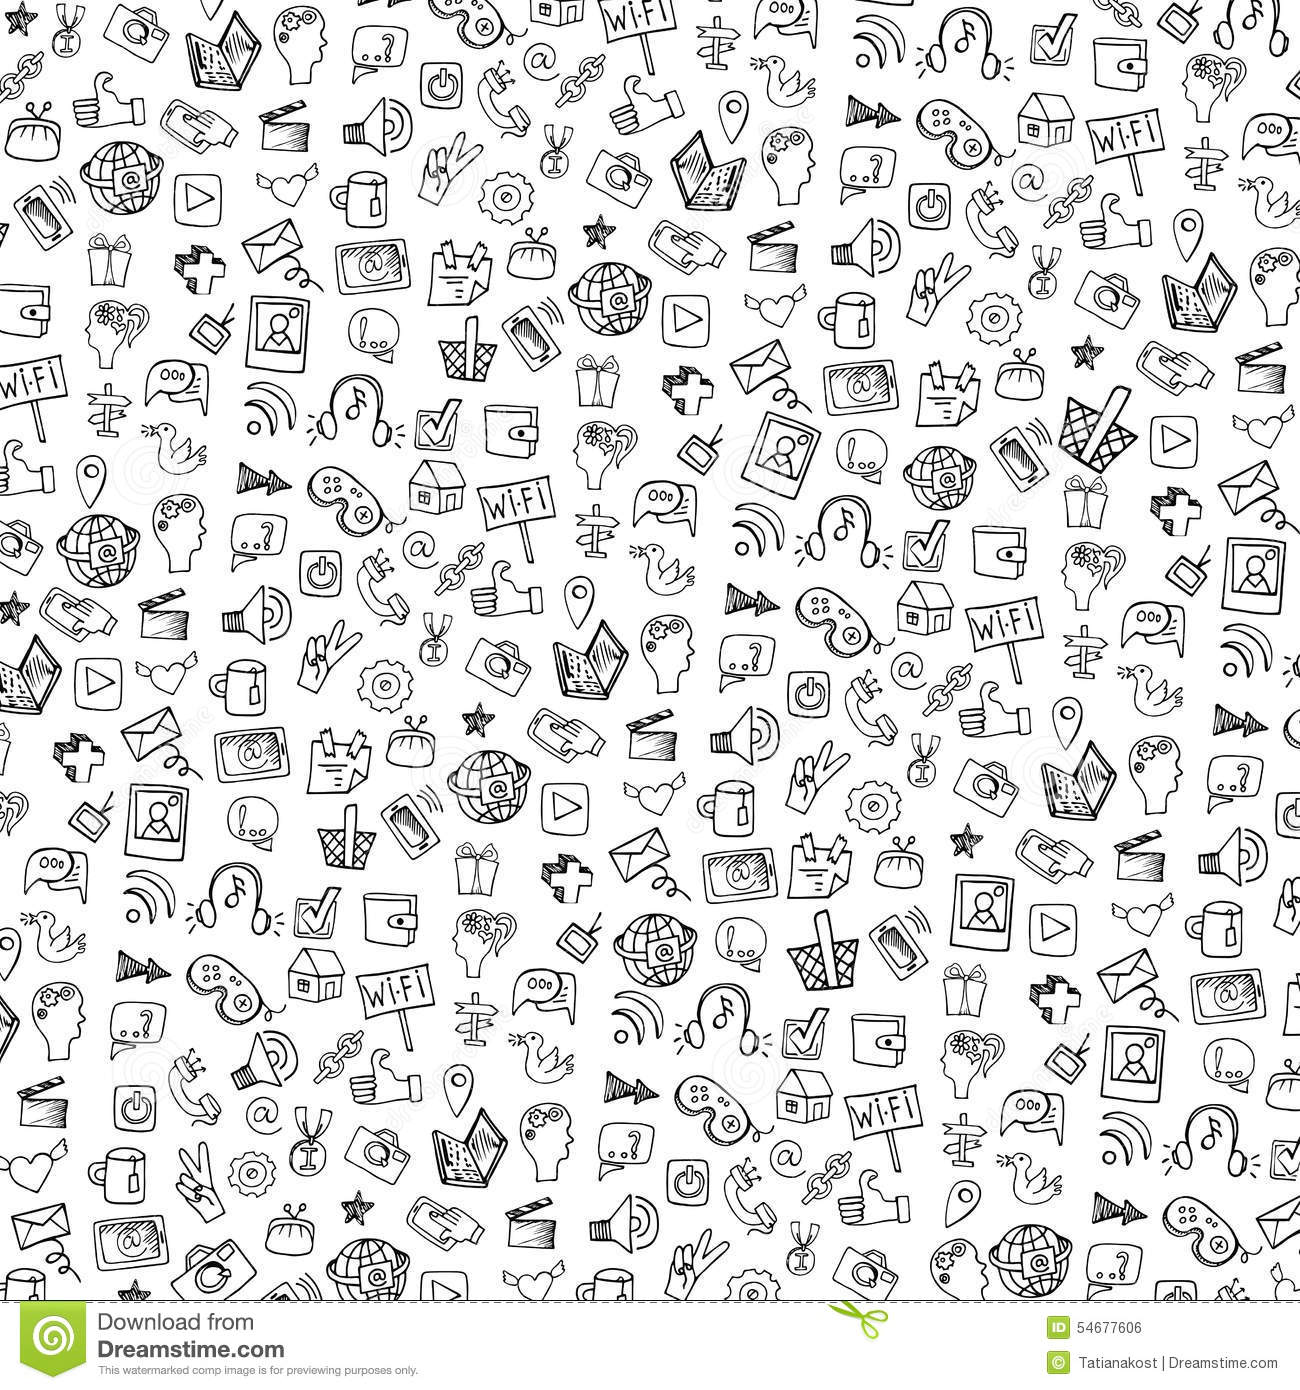 Social Media Icon PatternbackgroundDoodle Stock Vector